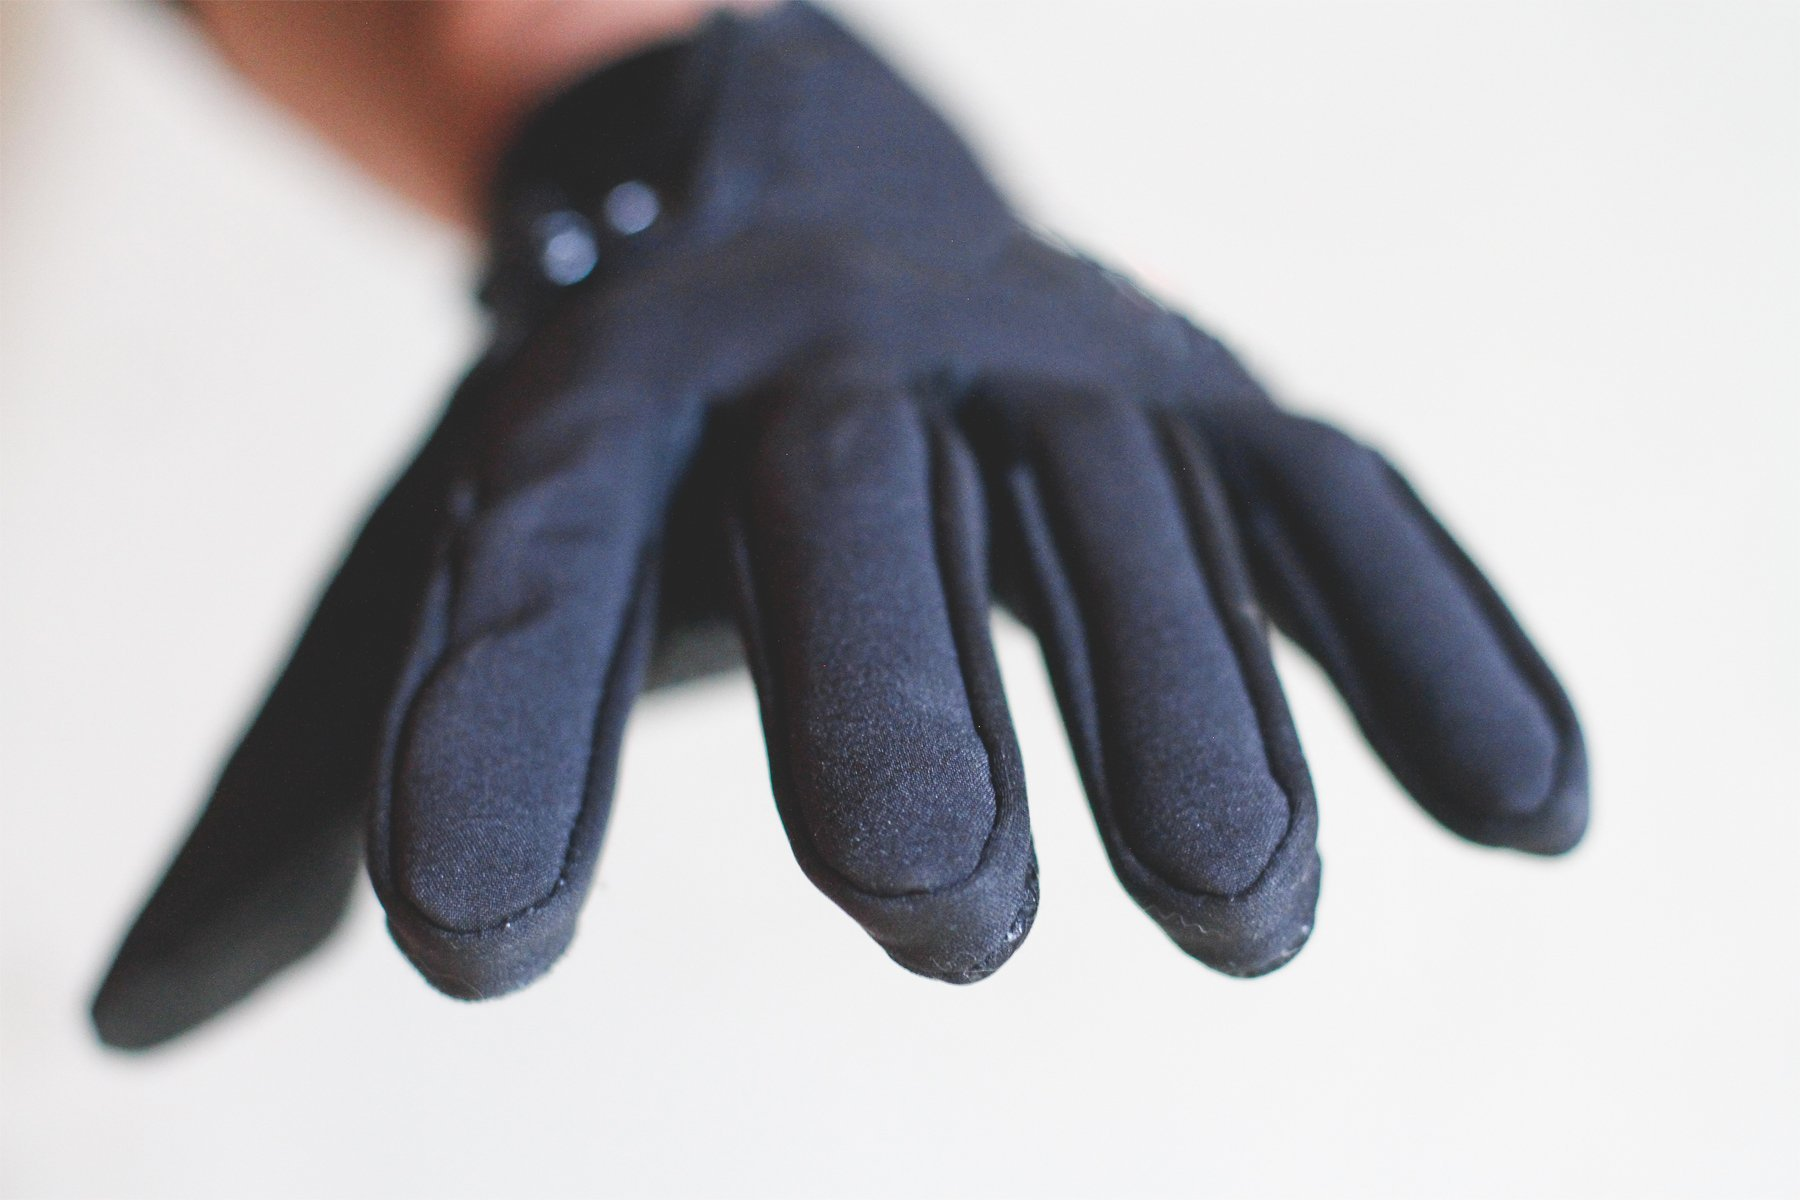 Mountain Made Cold Weather Gloves for Men and Women 2.0 with NEW UPGRADED ZIPPPERS,black,large by Mountain Made (Image #3)